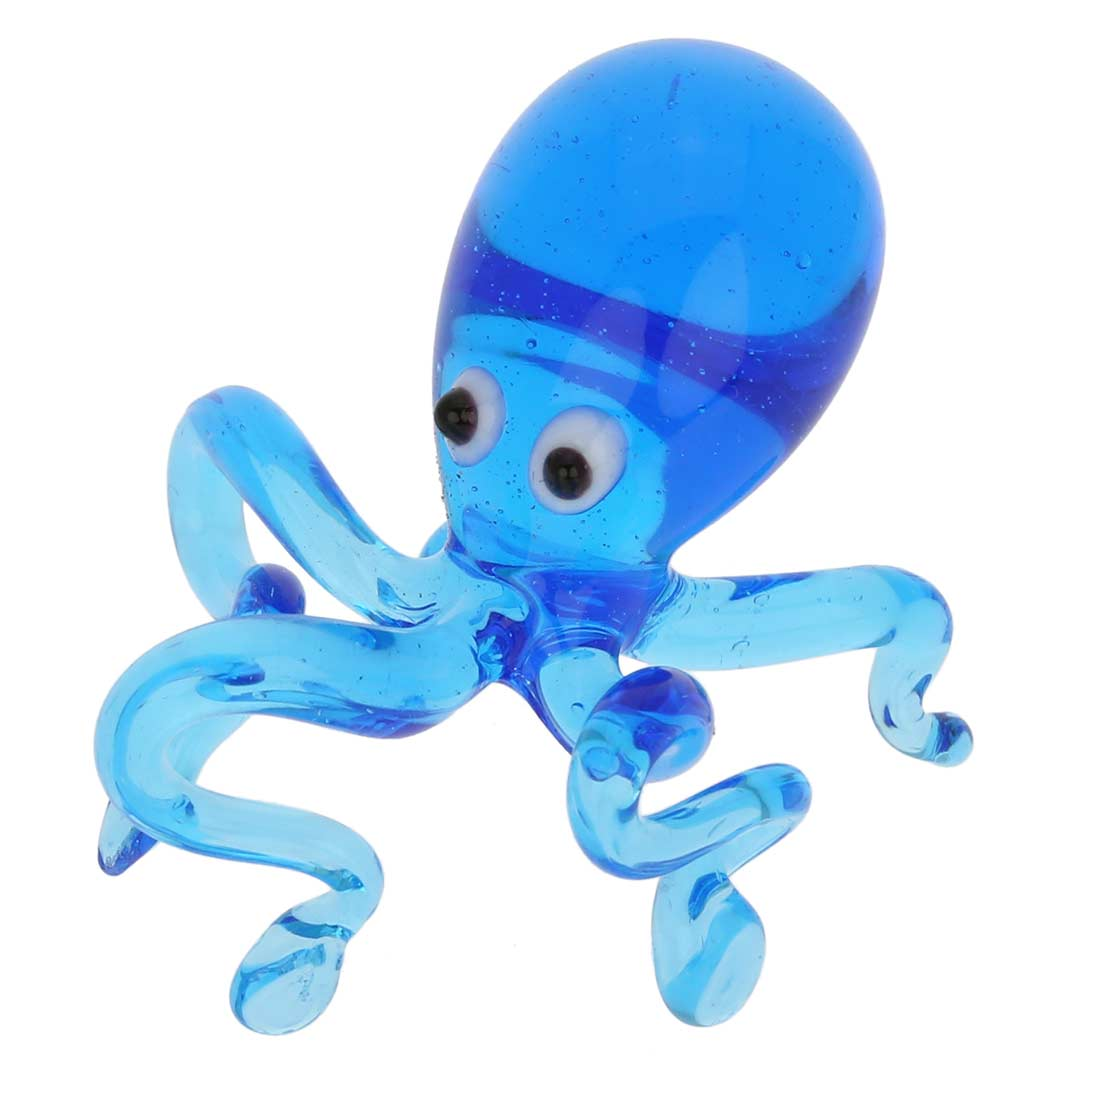 Murano Glass Octopus - Blue